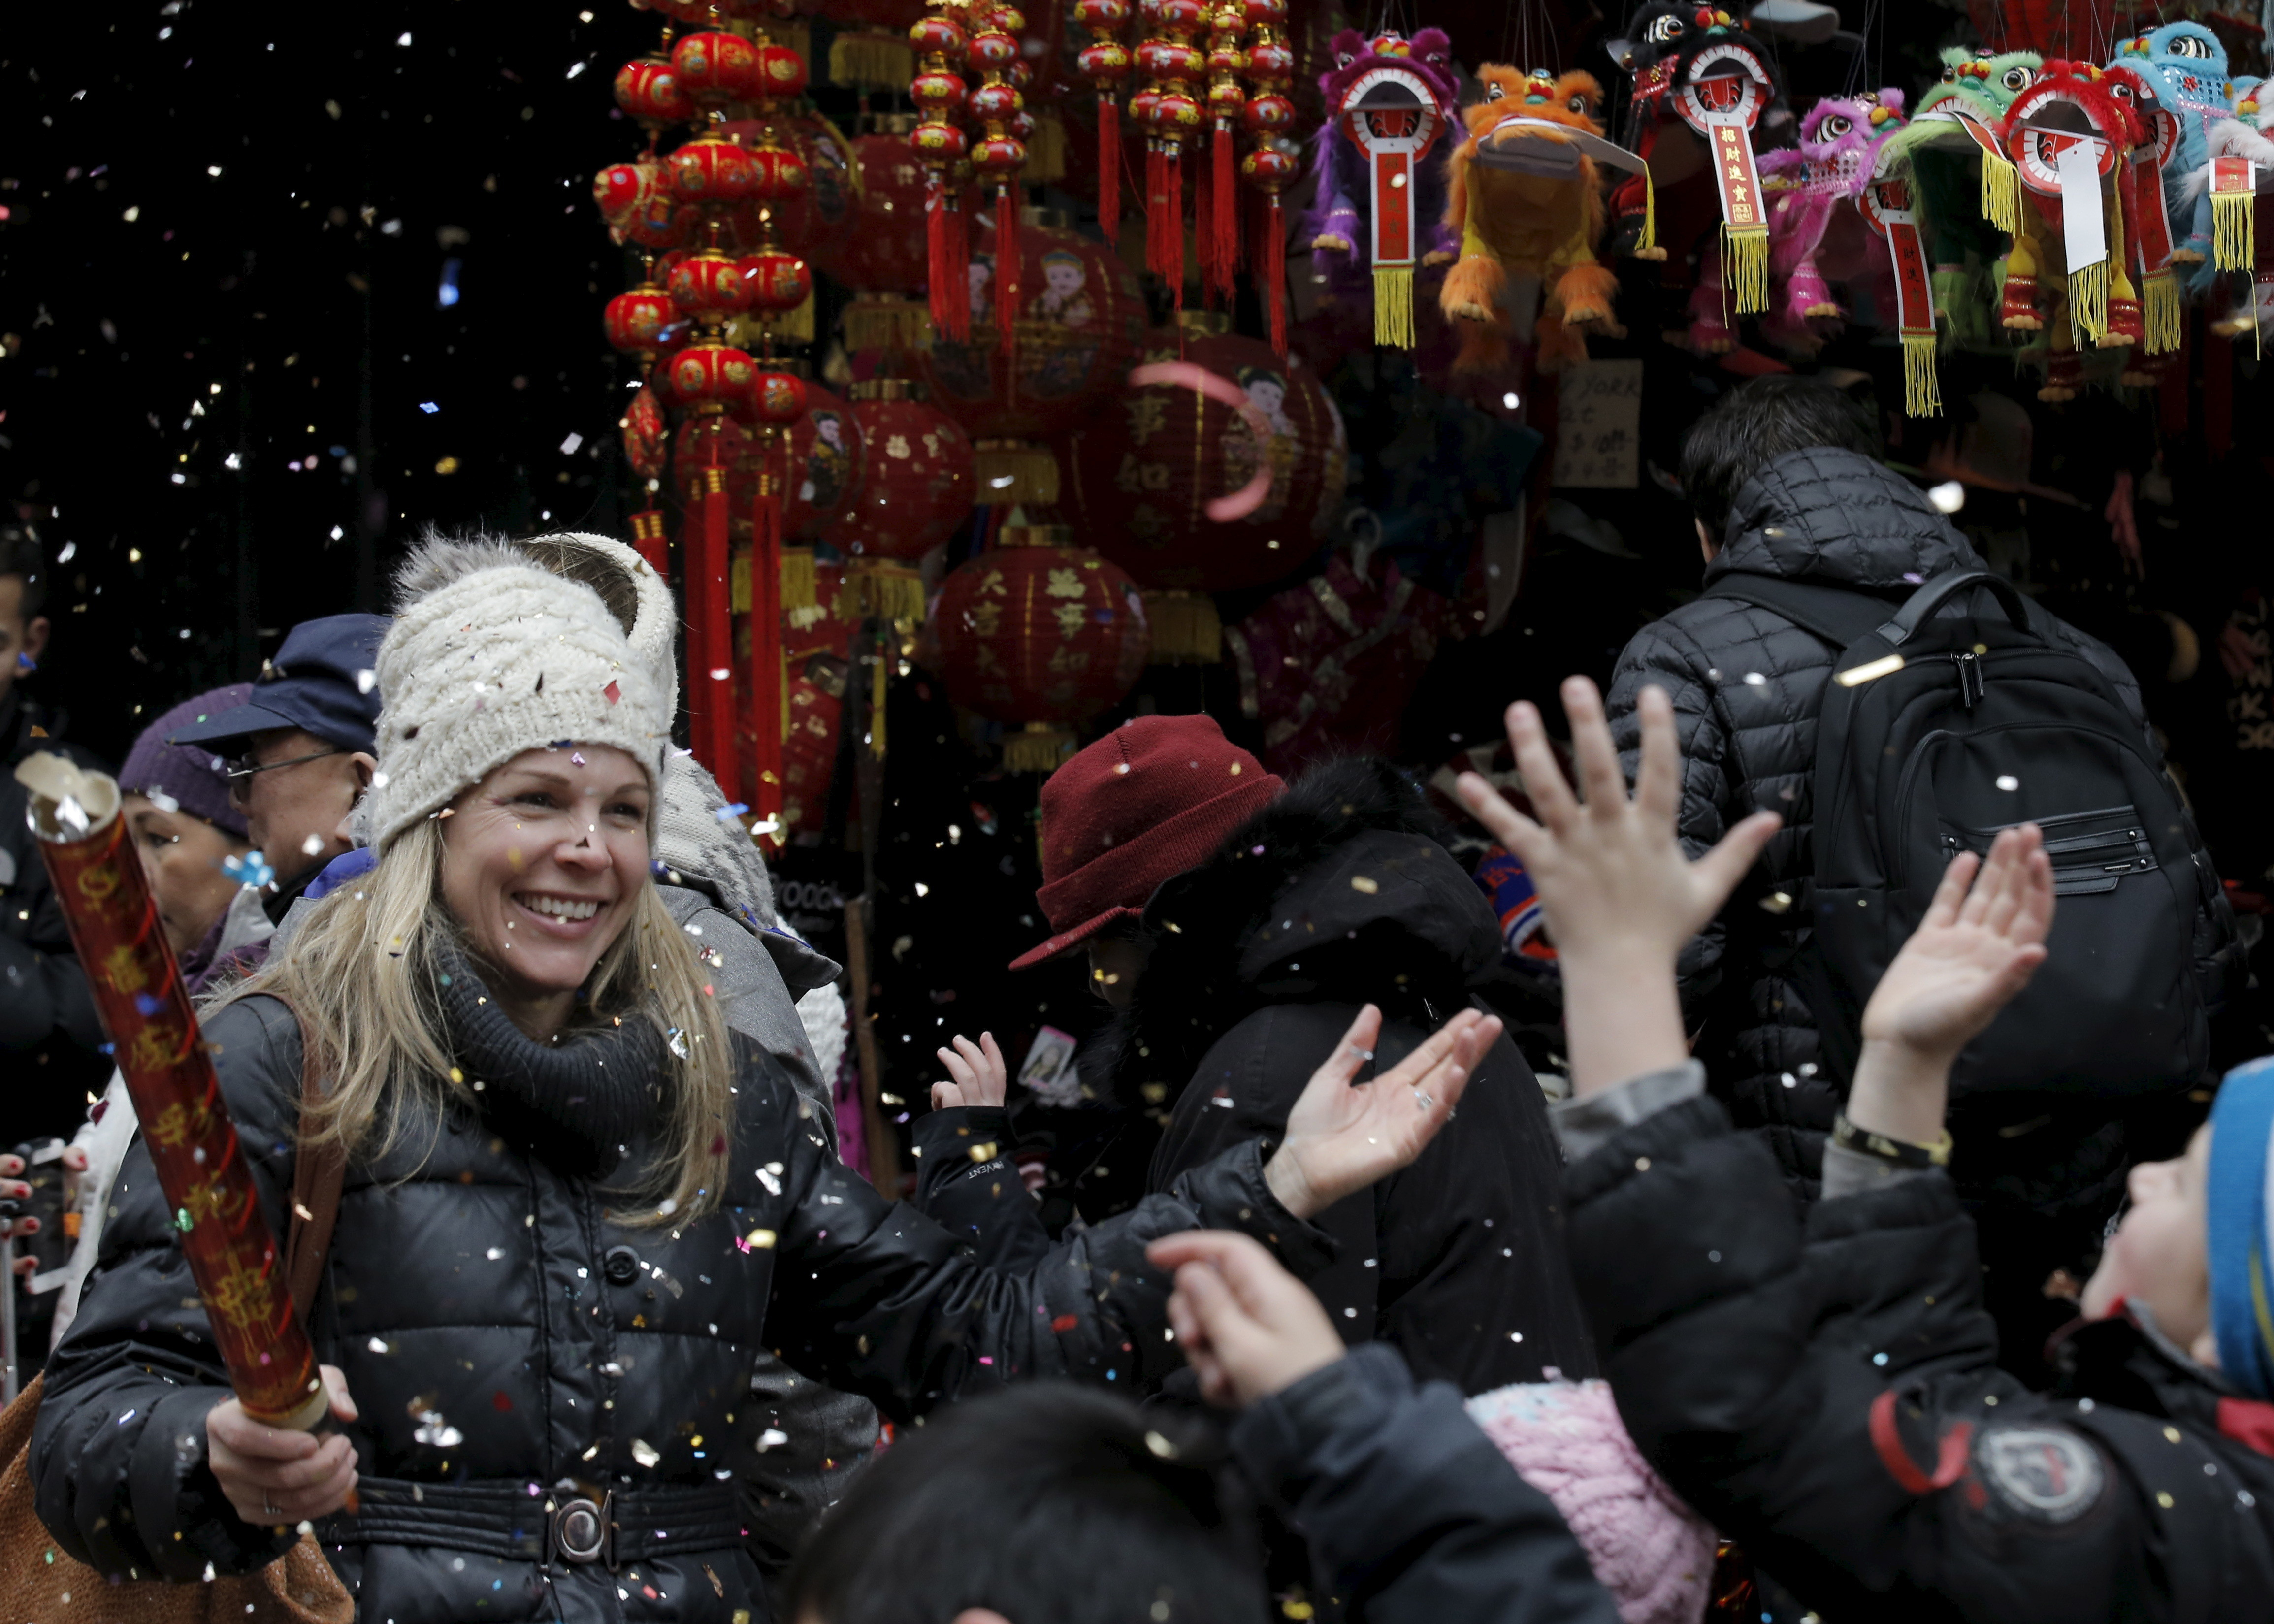 People celebrate the Chinese Lunar New Year in Manhattan's Chinatown in New York February 8, 2016. REUTERS/Brendan McDermid  - RTX262EG